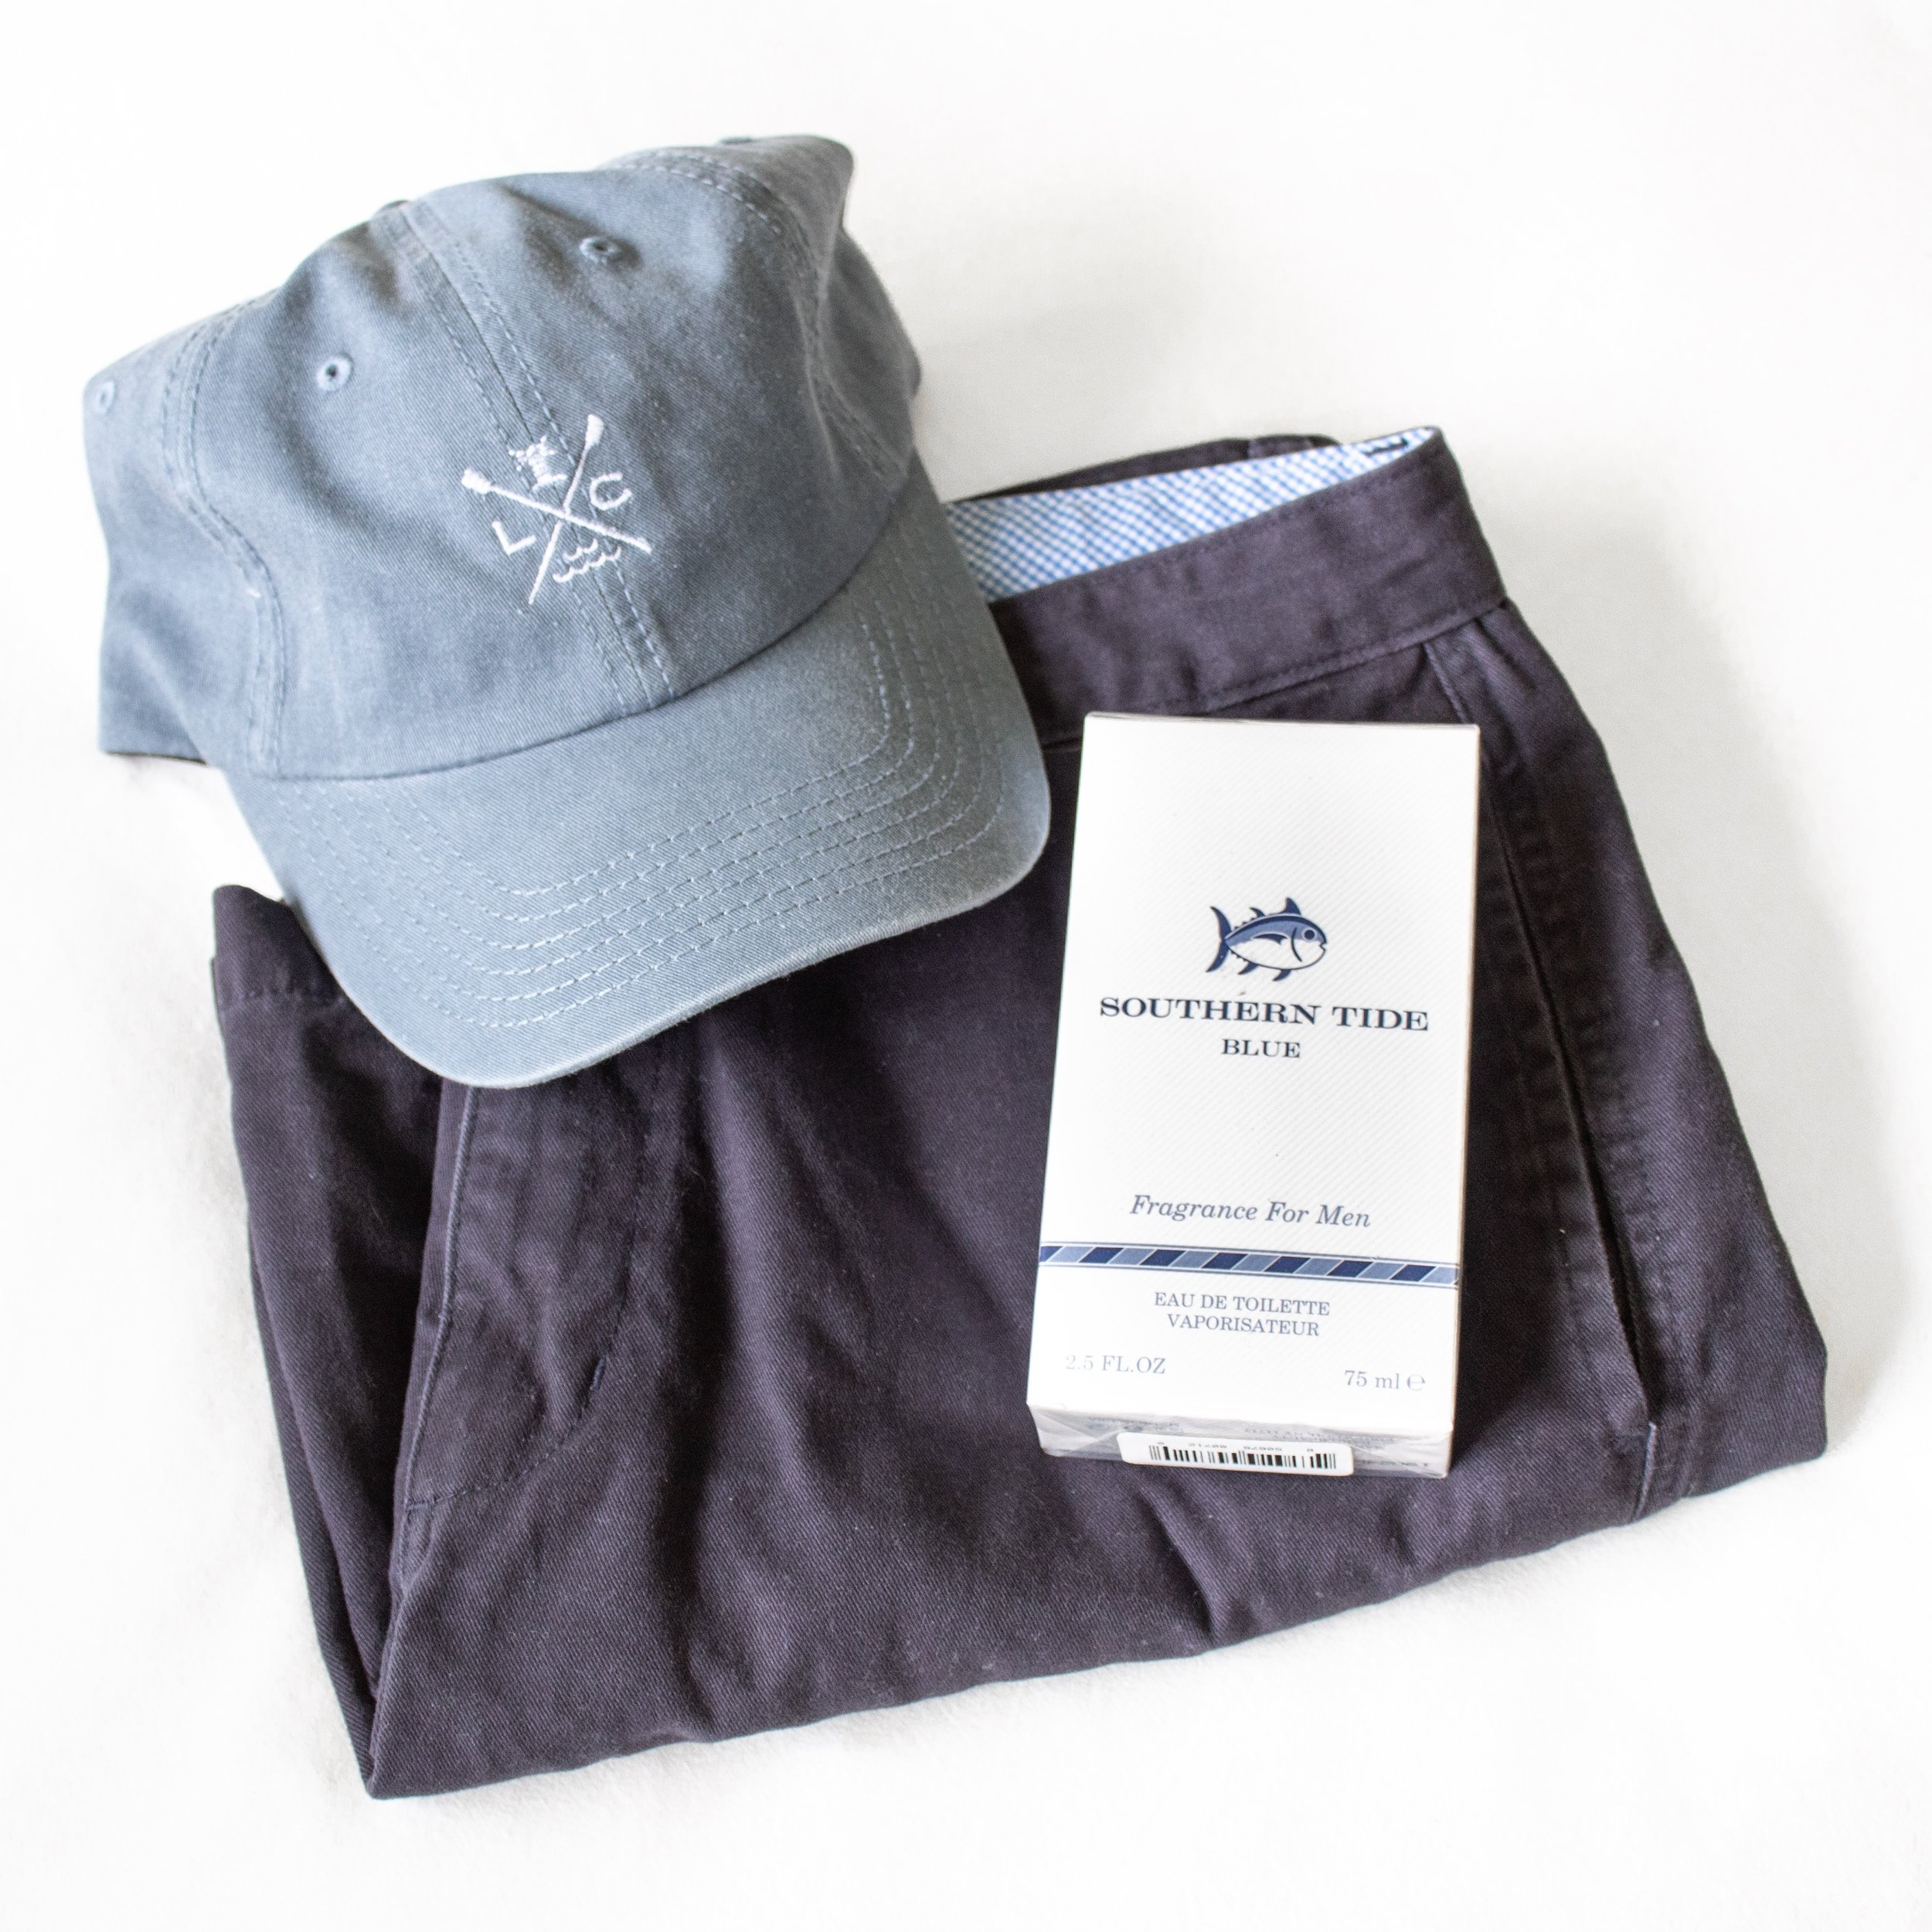 "Southern Tide ""Blue"" Cologne"